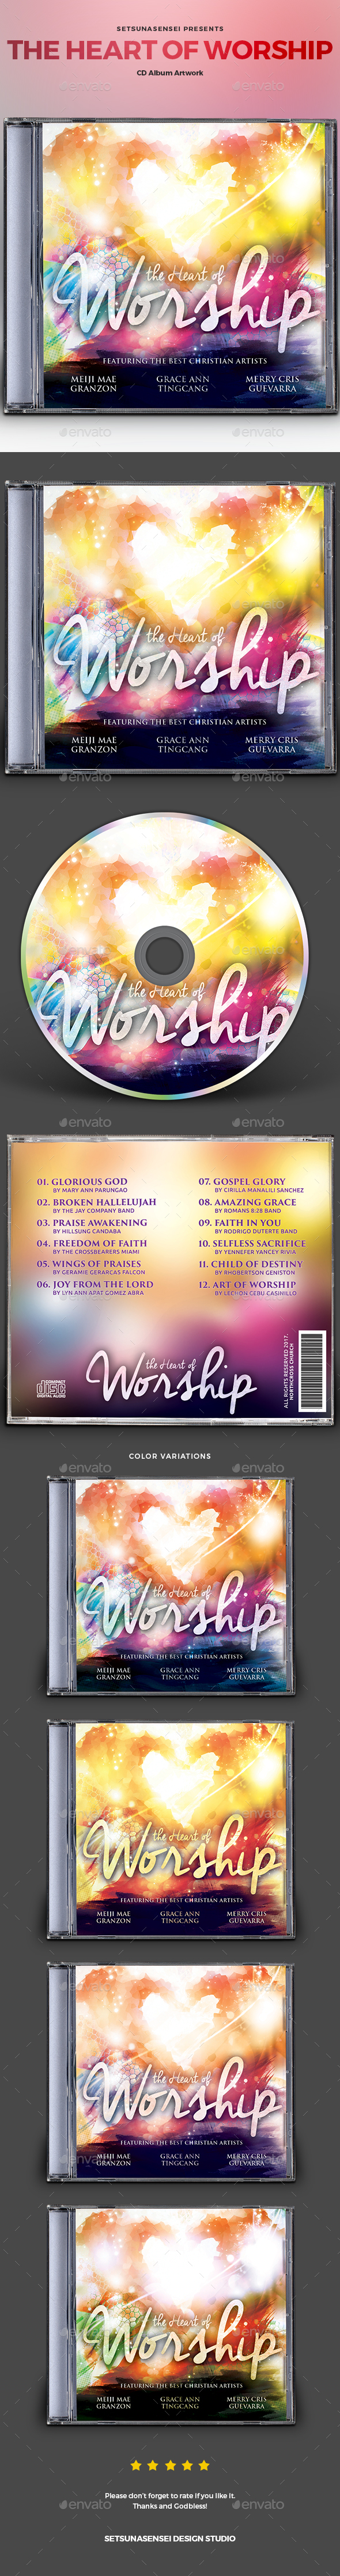 GraphicRiver The Heart of Worship CD Album Artwork 20610589